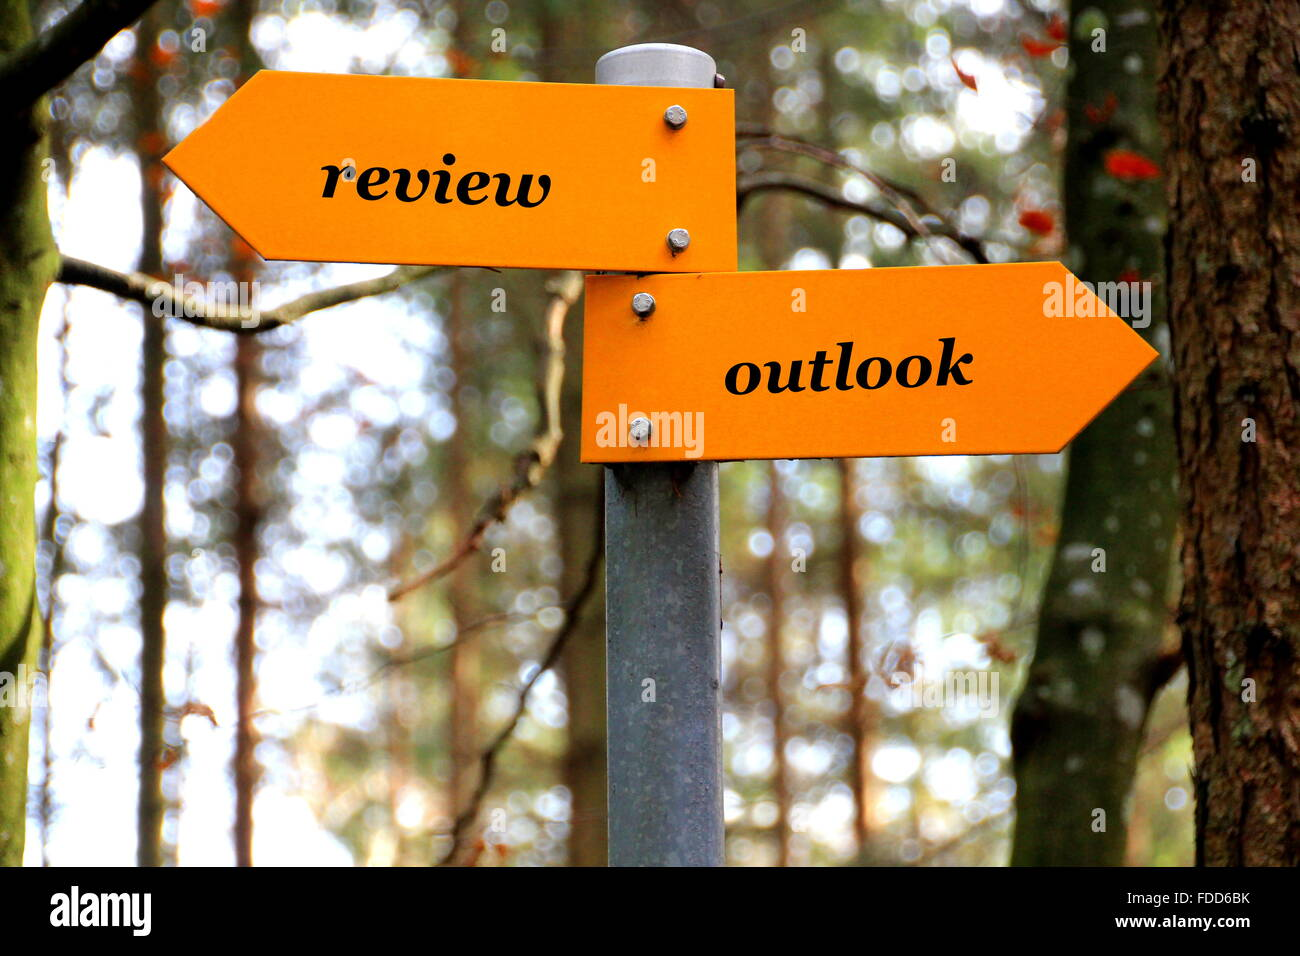 review and outlook written on a yellow direction sign - Stock Image